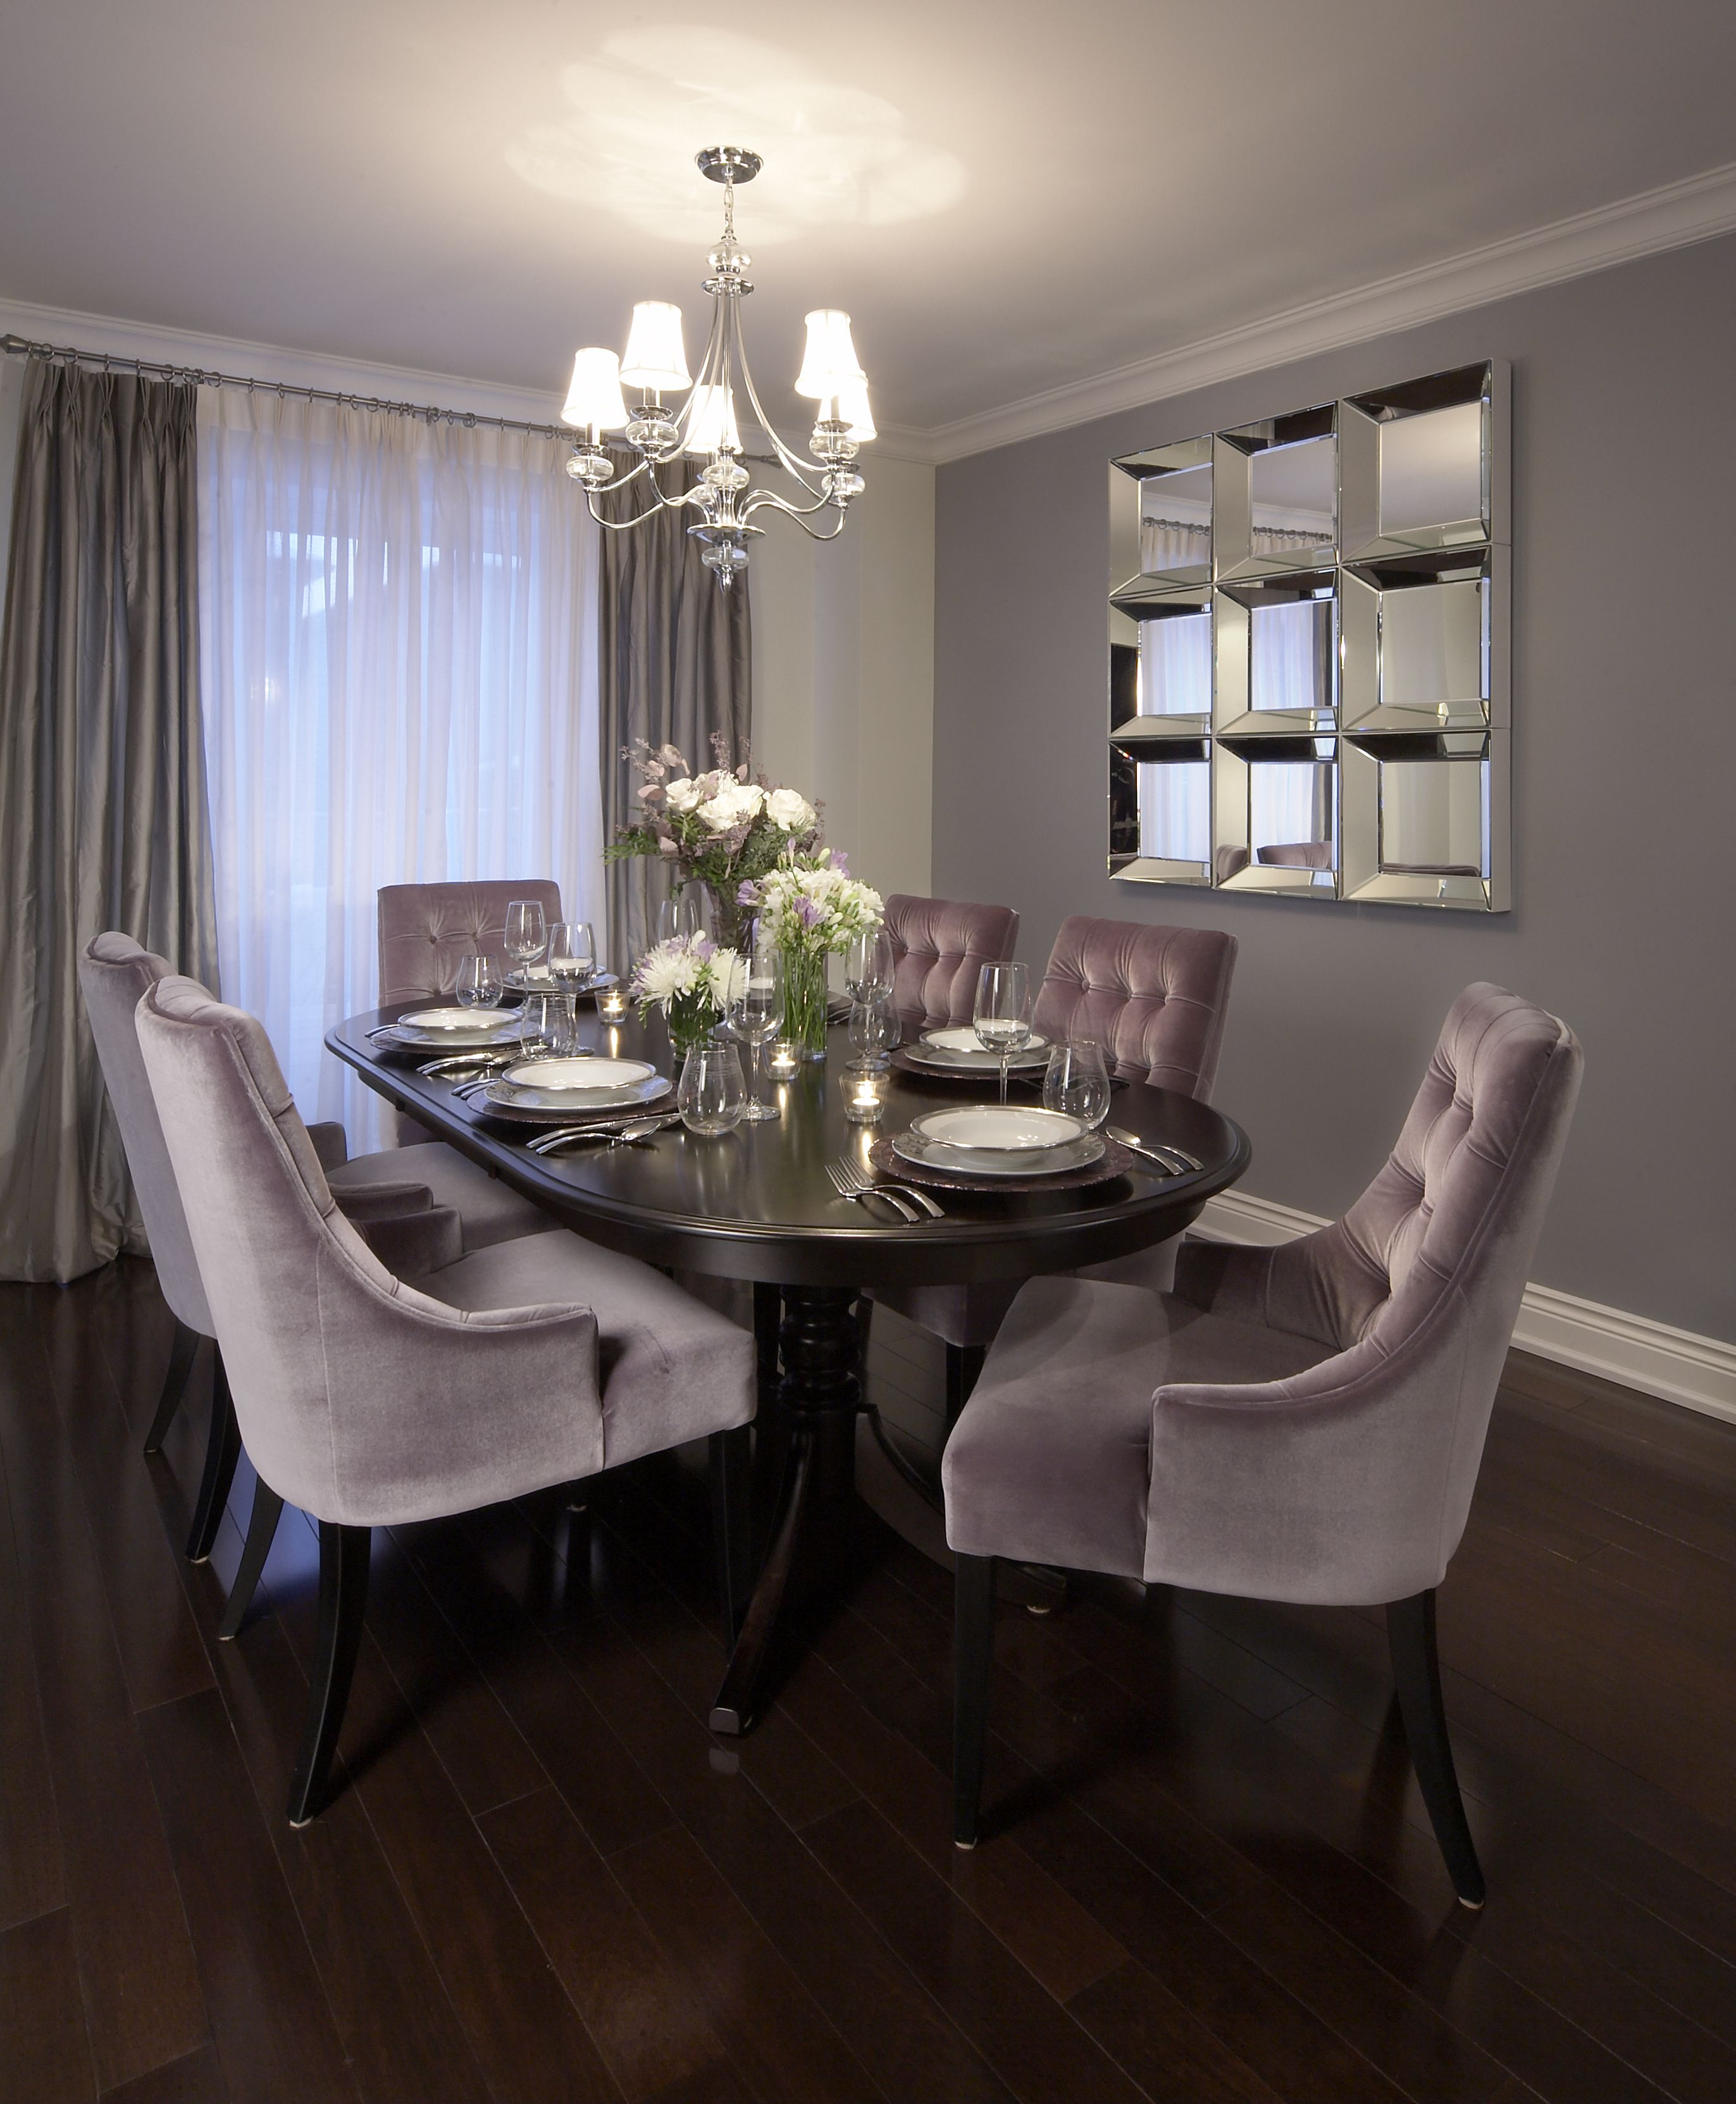 Dining Room With Wall Mirror Chandelier Dark Wood Table And